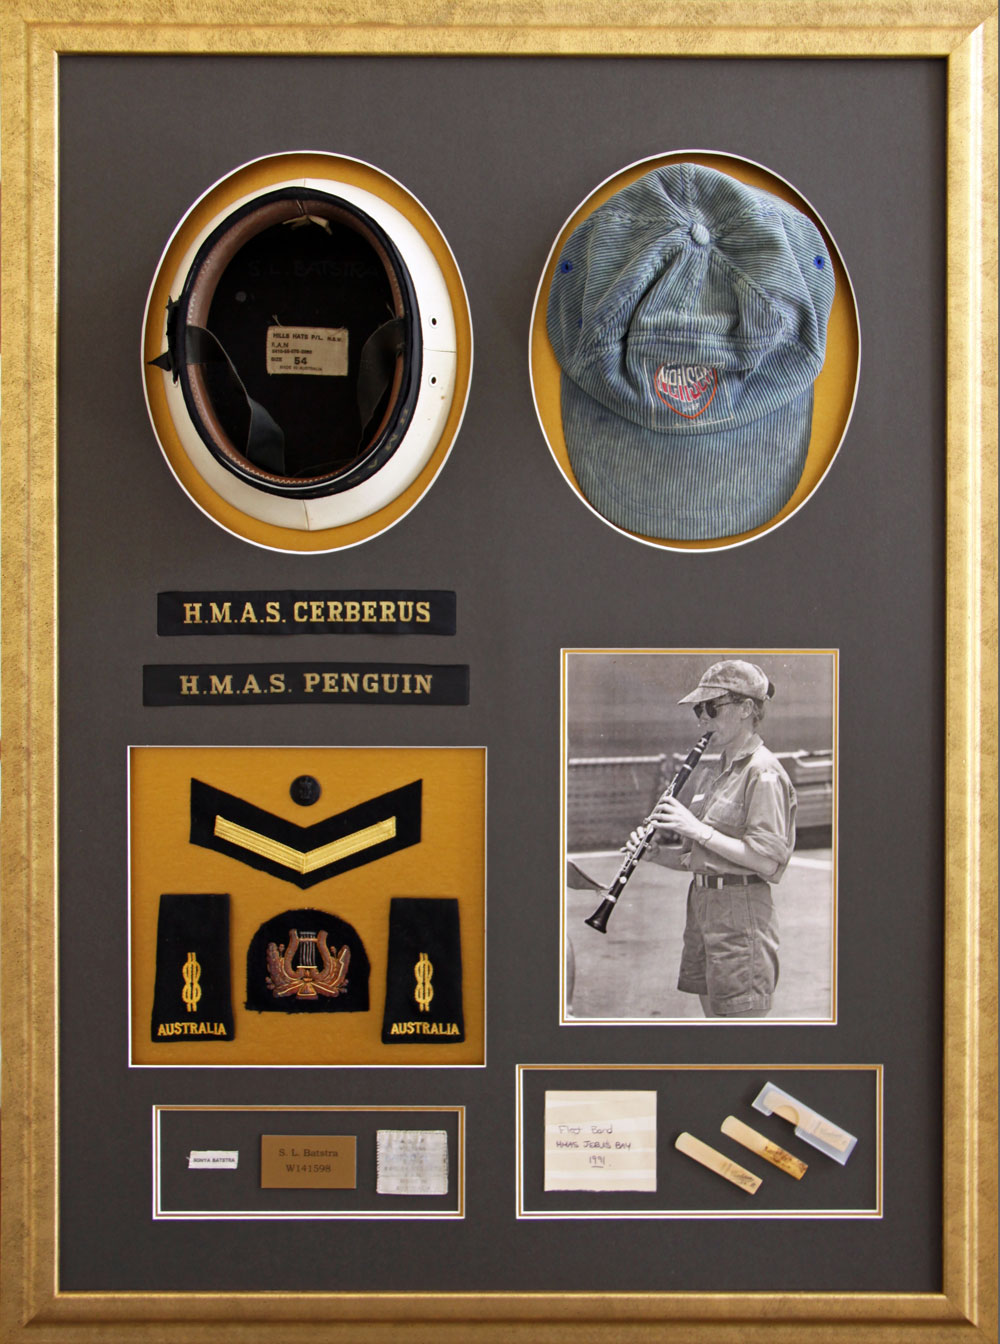 ExPERT FRAMING of memorabilia